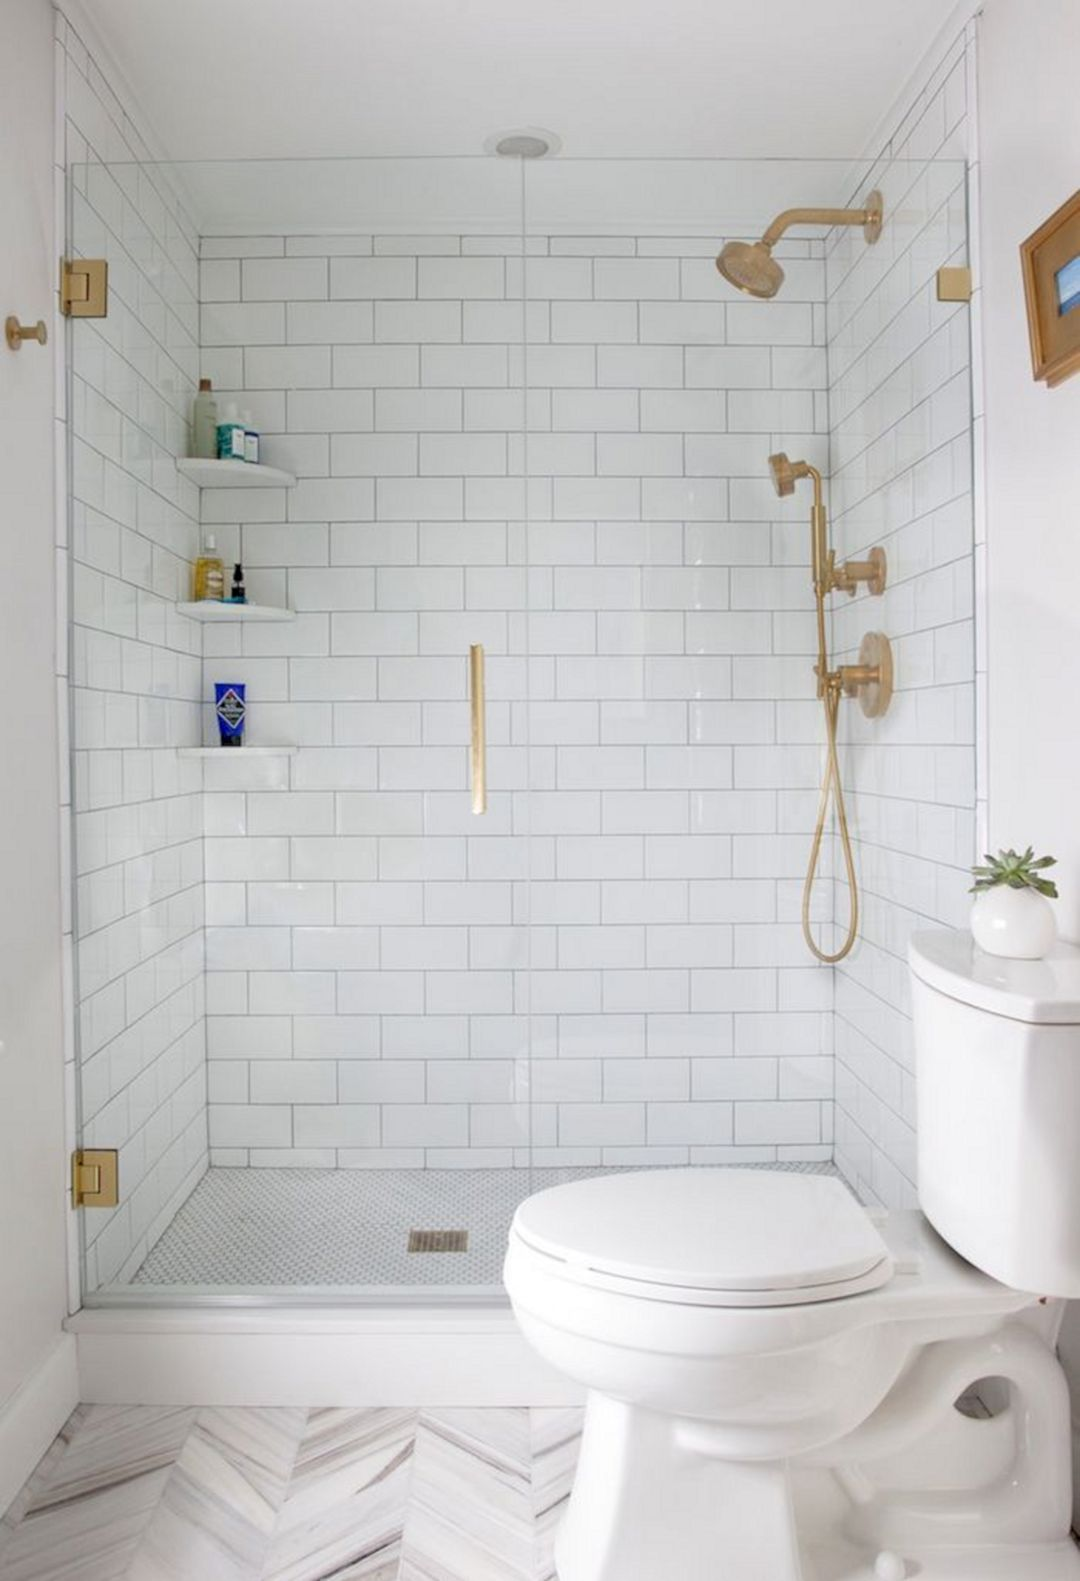 Subway Tile Walk In Shower Ideas 3 24 Master Suite Addition Bathroom Design Small Small Bathroom Remodel